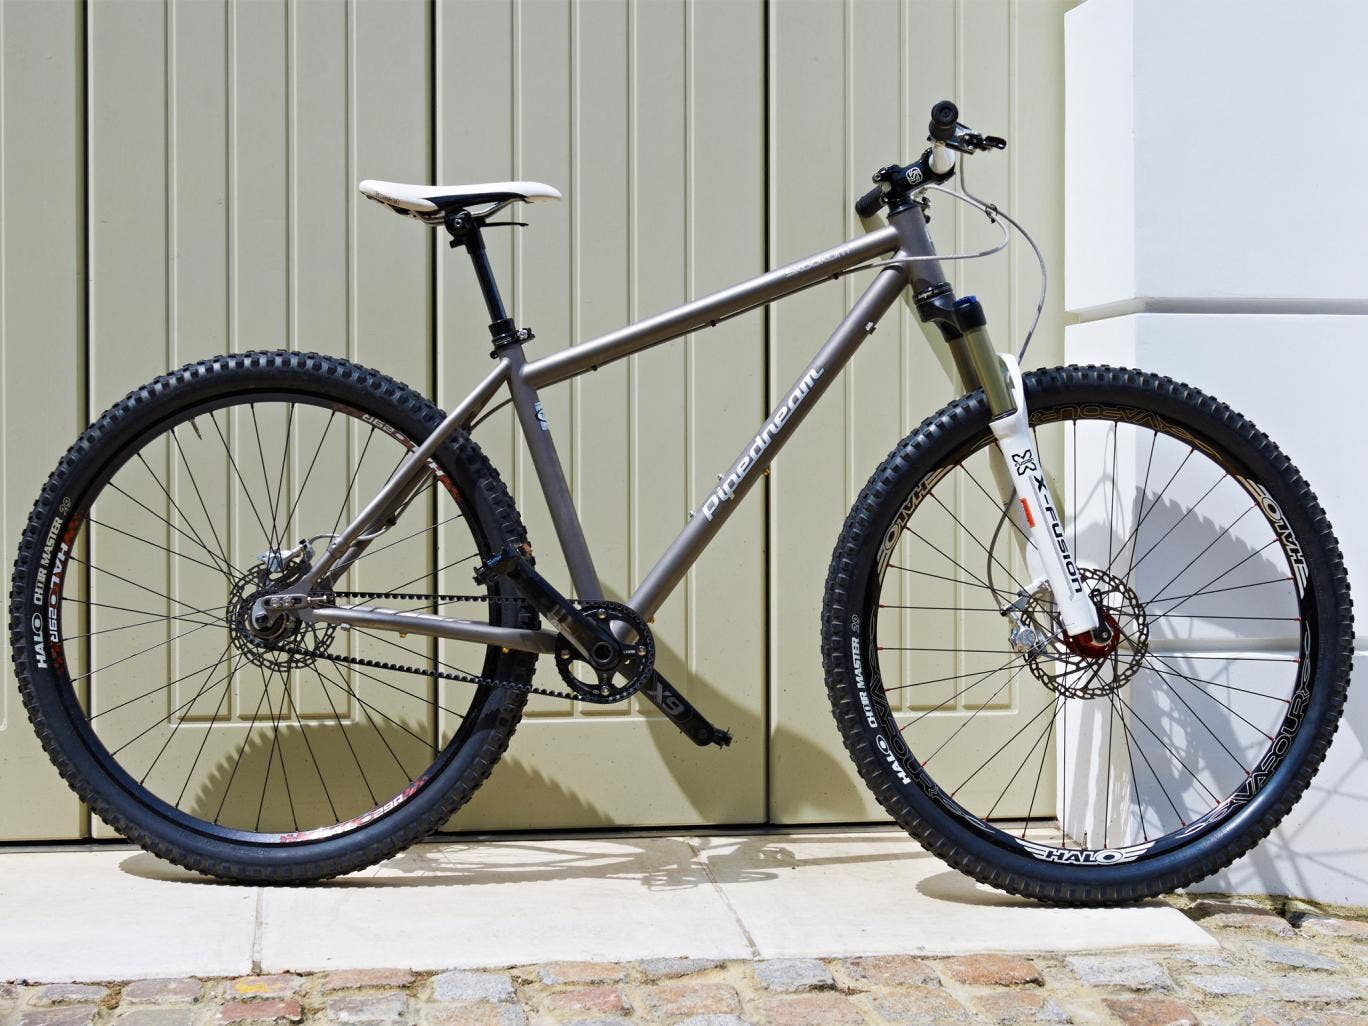 The Pipedream Skookum 29er Titanium is designed to hammer down muddy paths